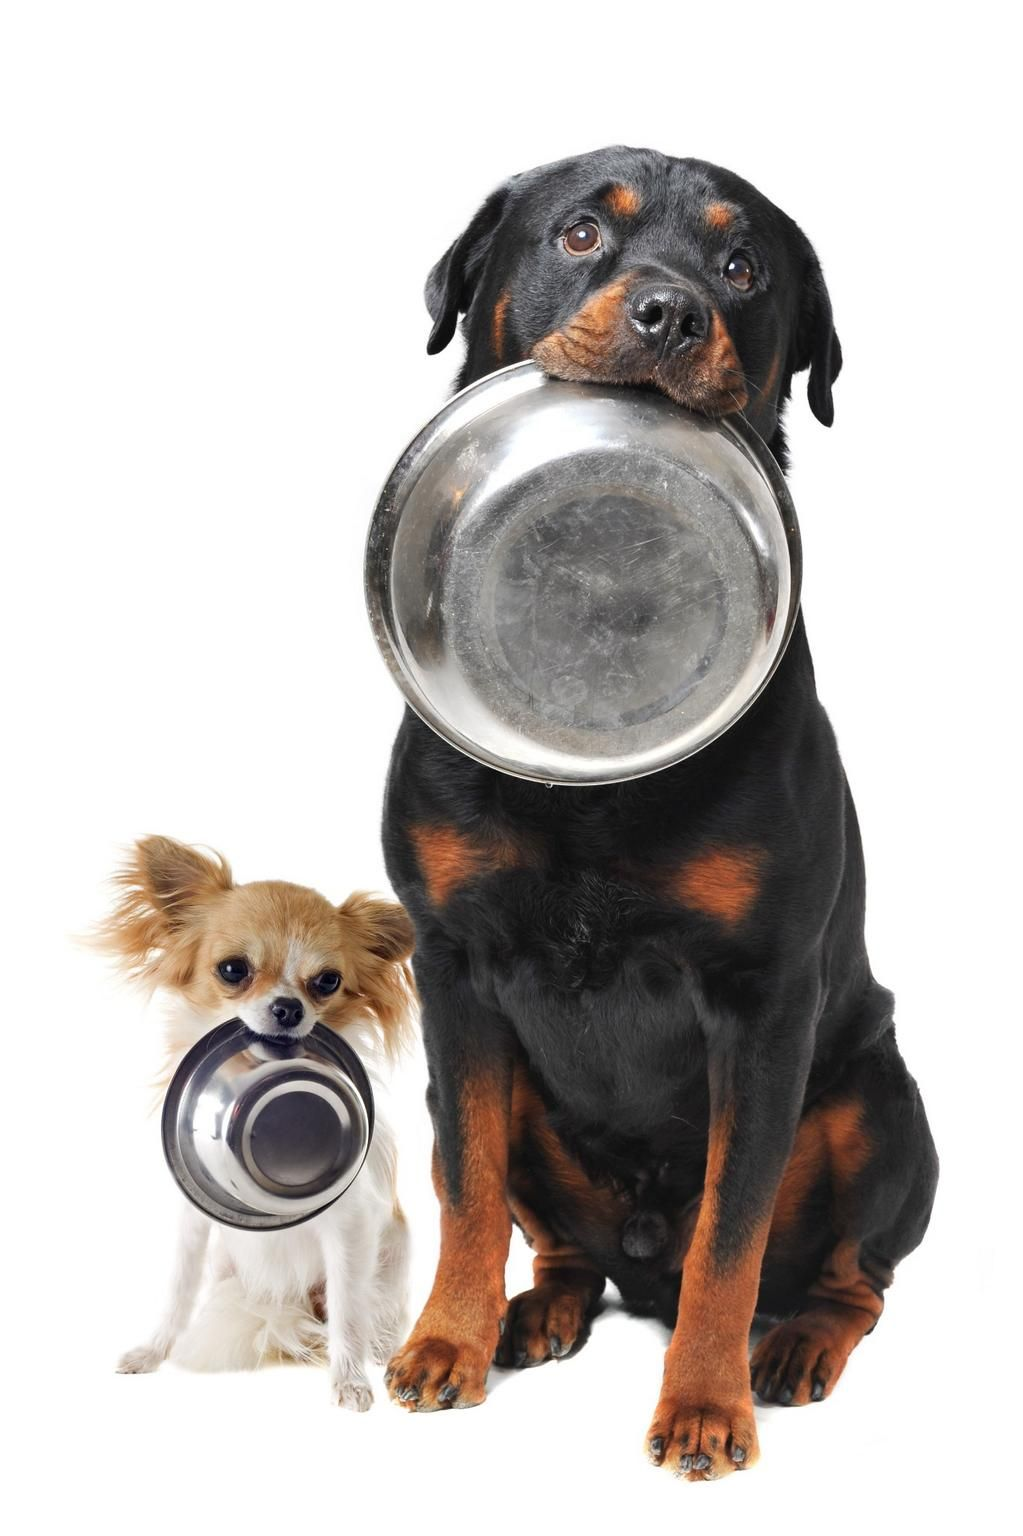 P A M On Rottweiler Names Pancreatitis In Dogs Rottweiler Pictures